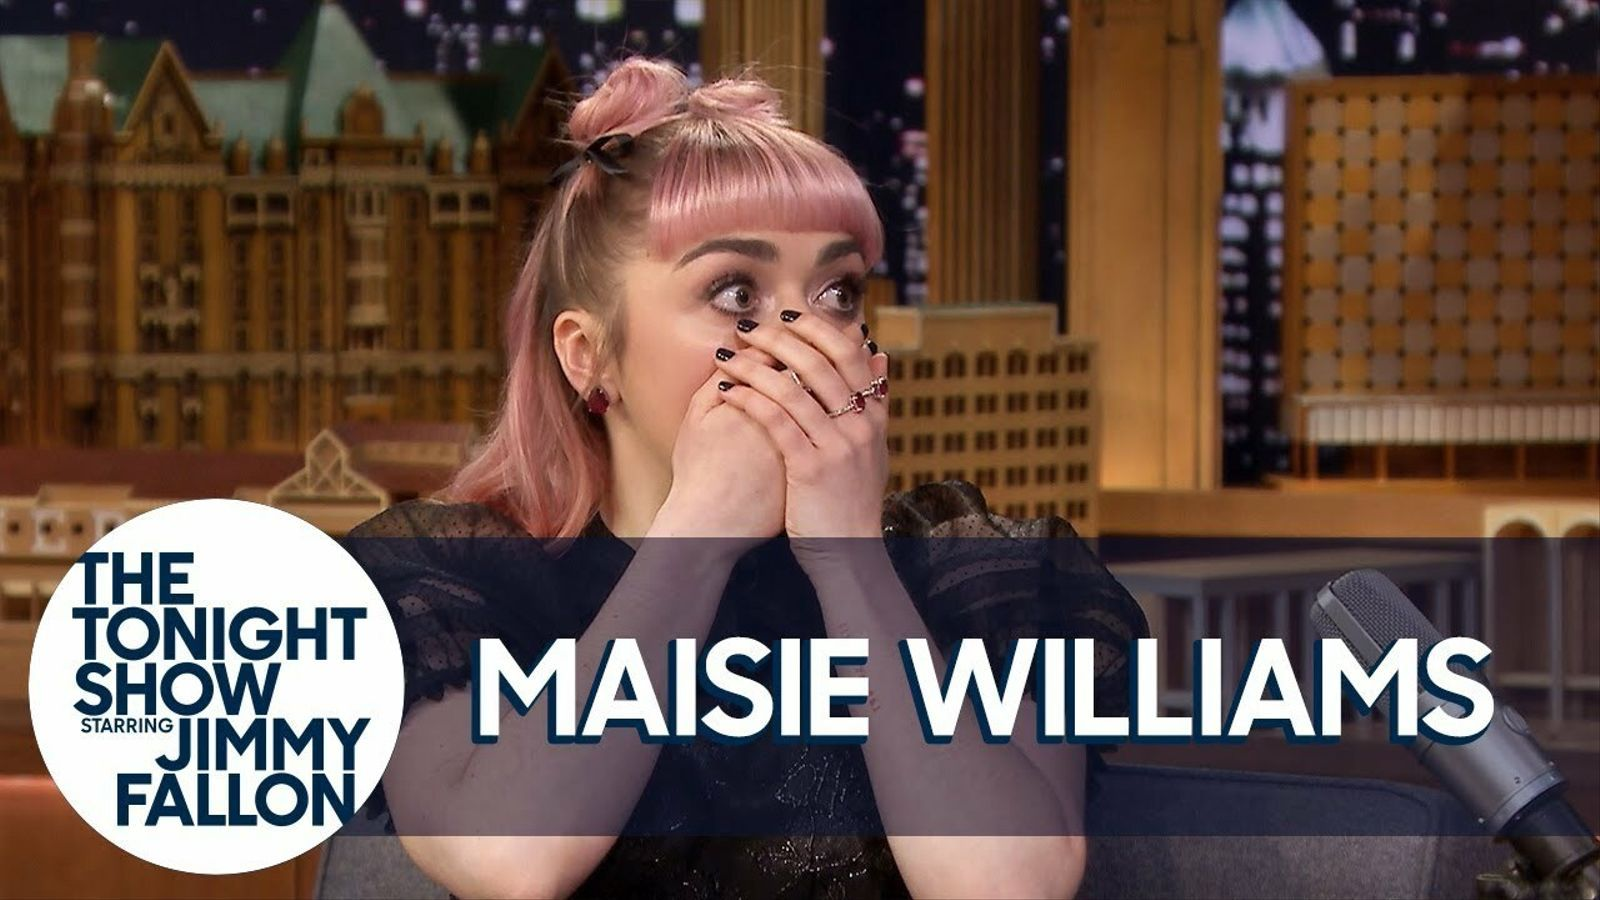 Maisie Williams a a 'The Tonight show with Jimmy Fallon'